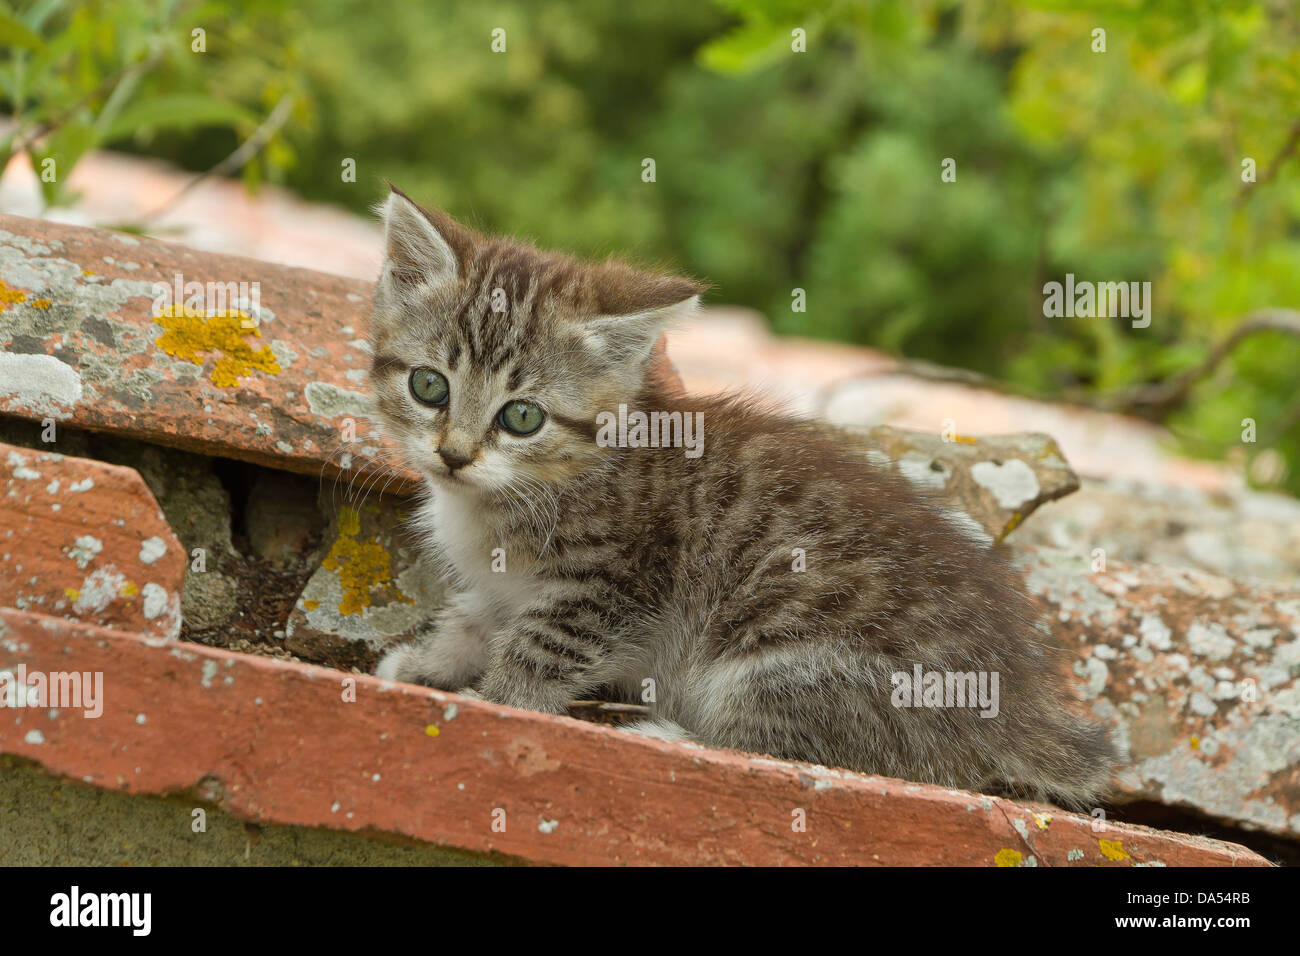 Animal, cat, kitten, young, garden, domestic animal, pet, - Stock Image